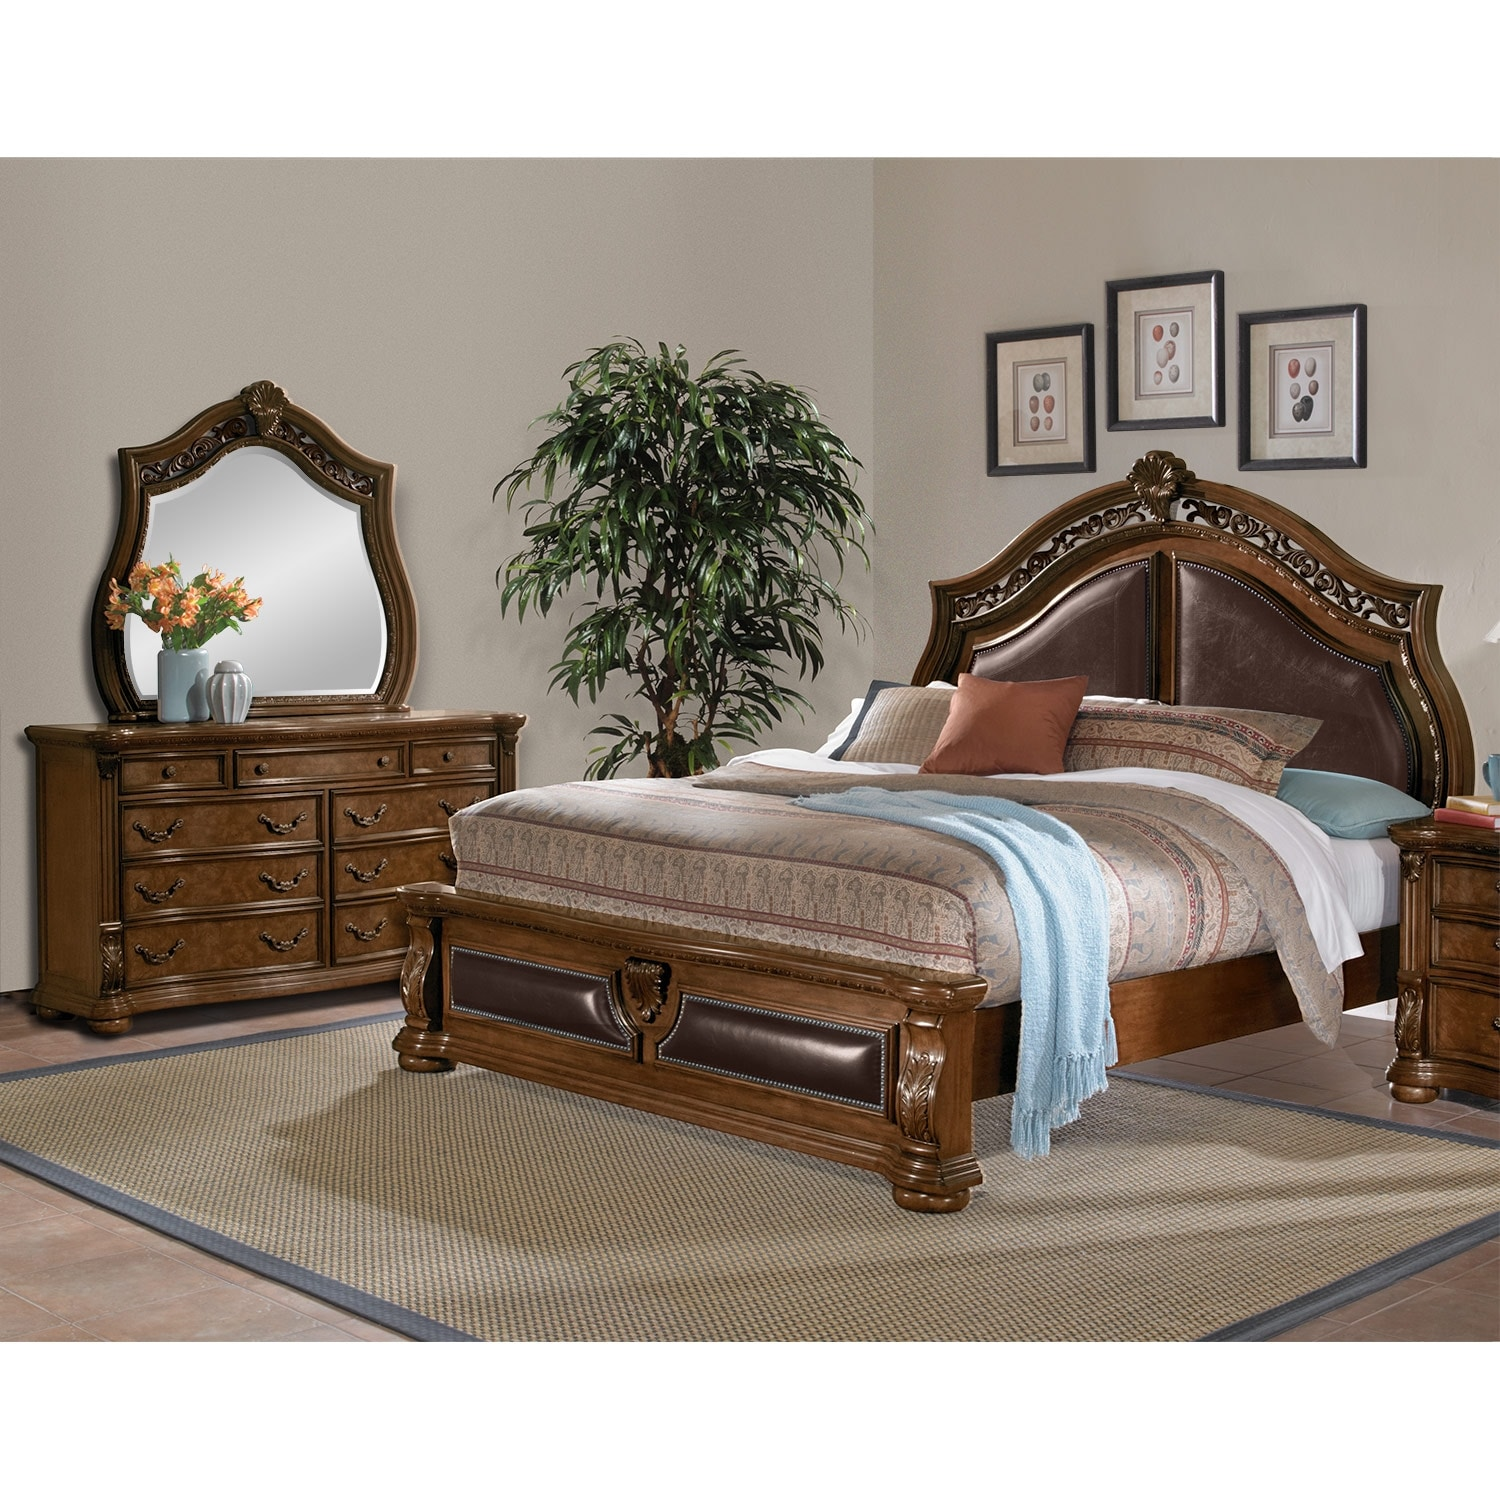 Bedroom Furniture: Morocco 5-Piece King Bedroom Set - Pecan